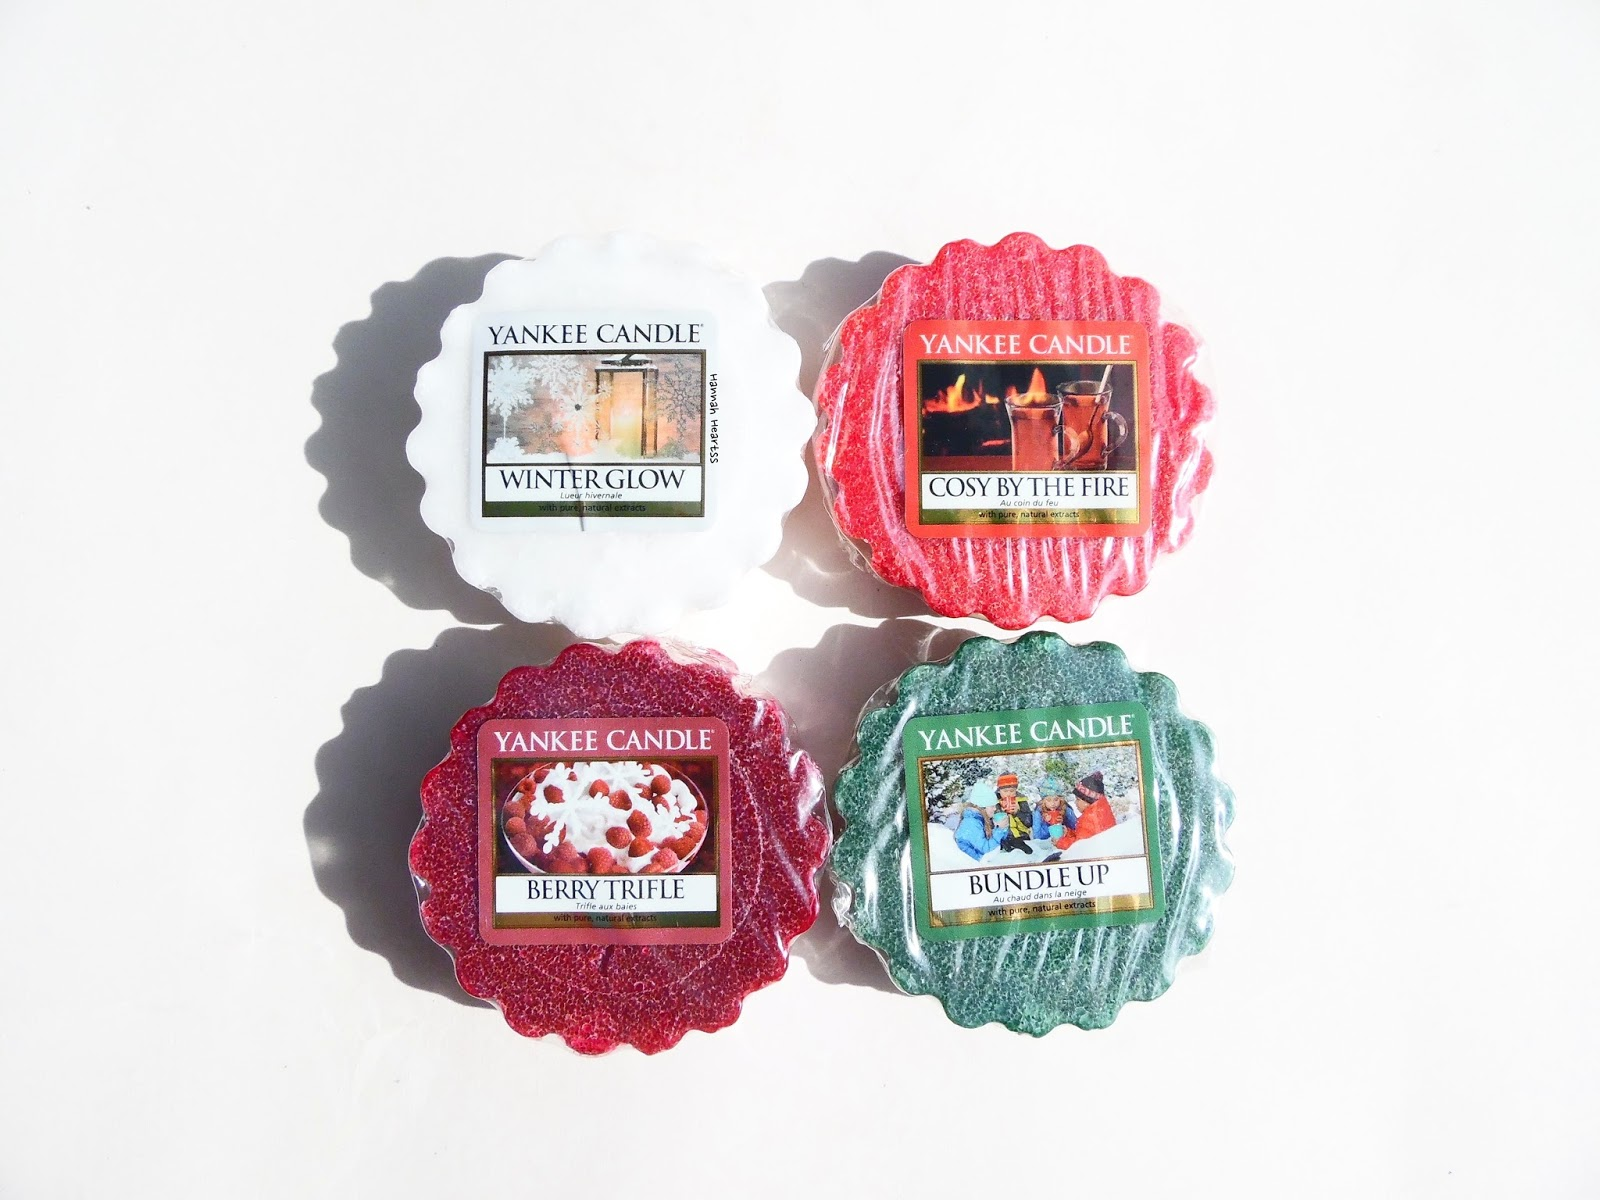 Yankee Candle Christmas Scents 2015